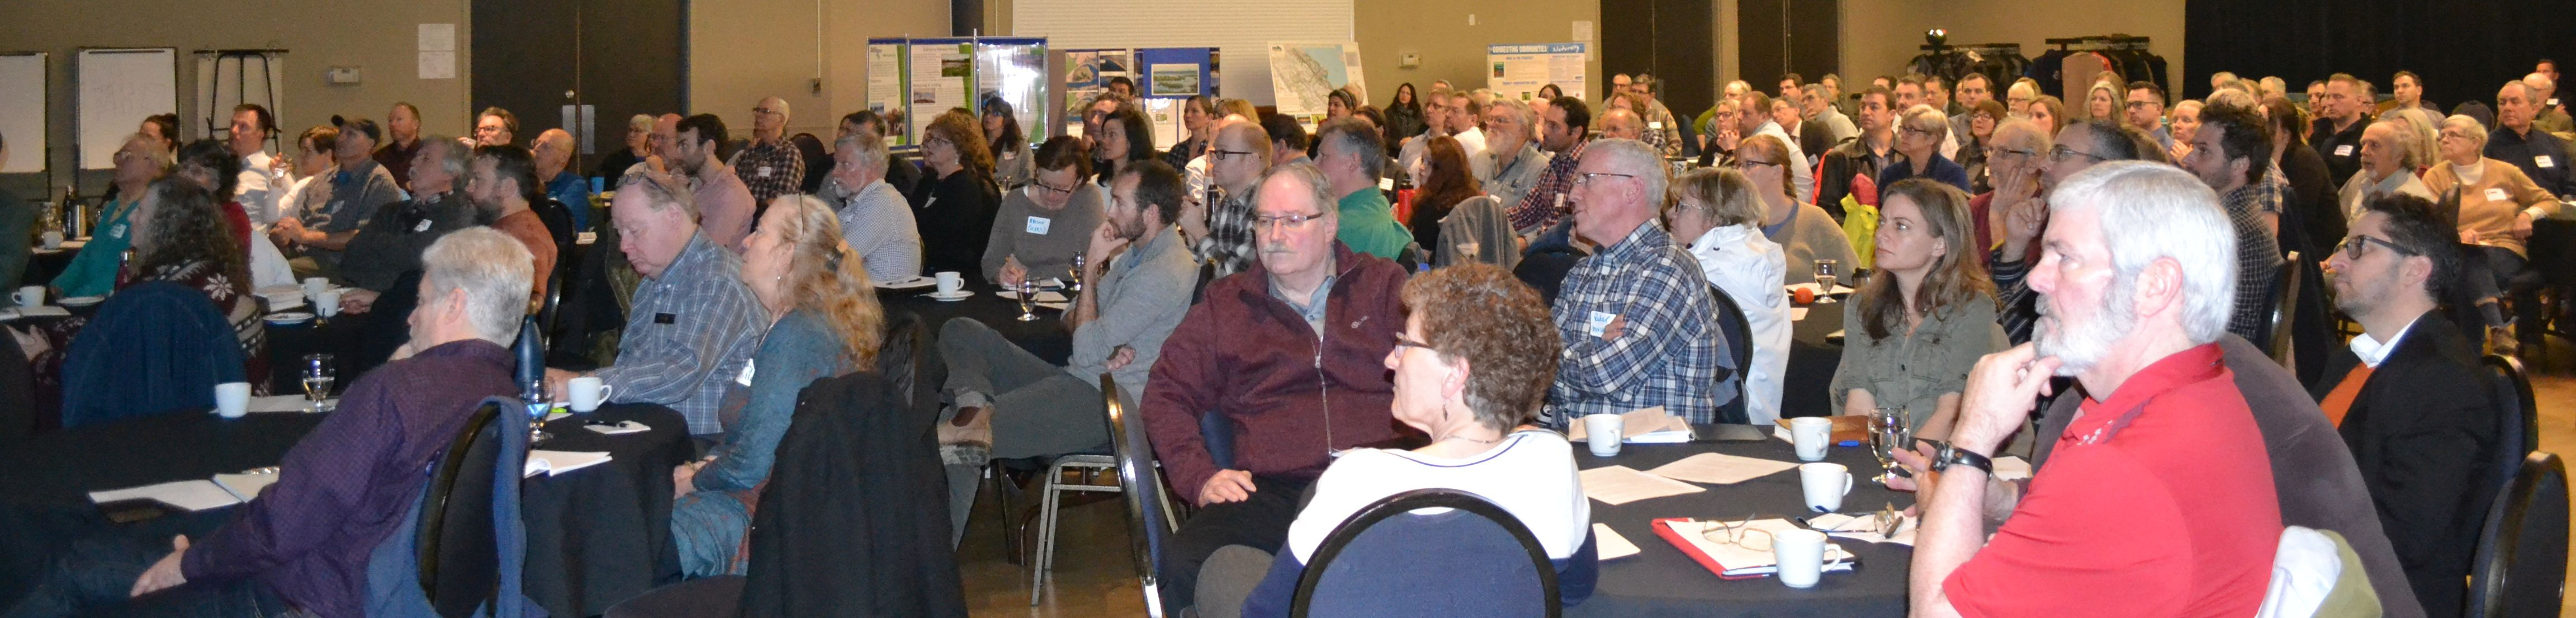 Capacity crowd for the Comox Valley Eco-Asset Symposium, held at the Filberg Centre in the City of Courtenay on Vancouver Island